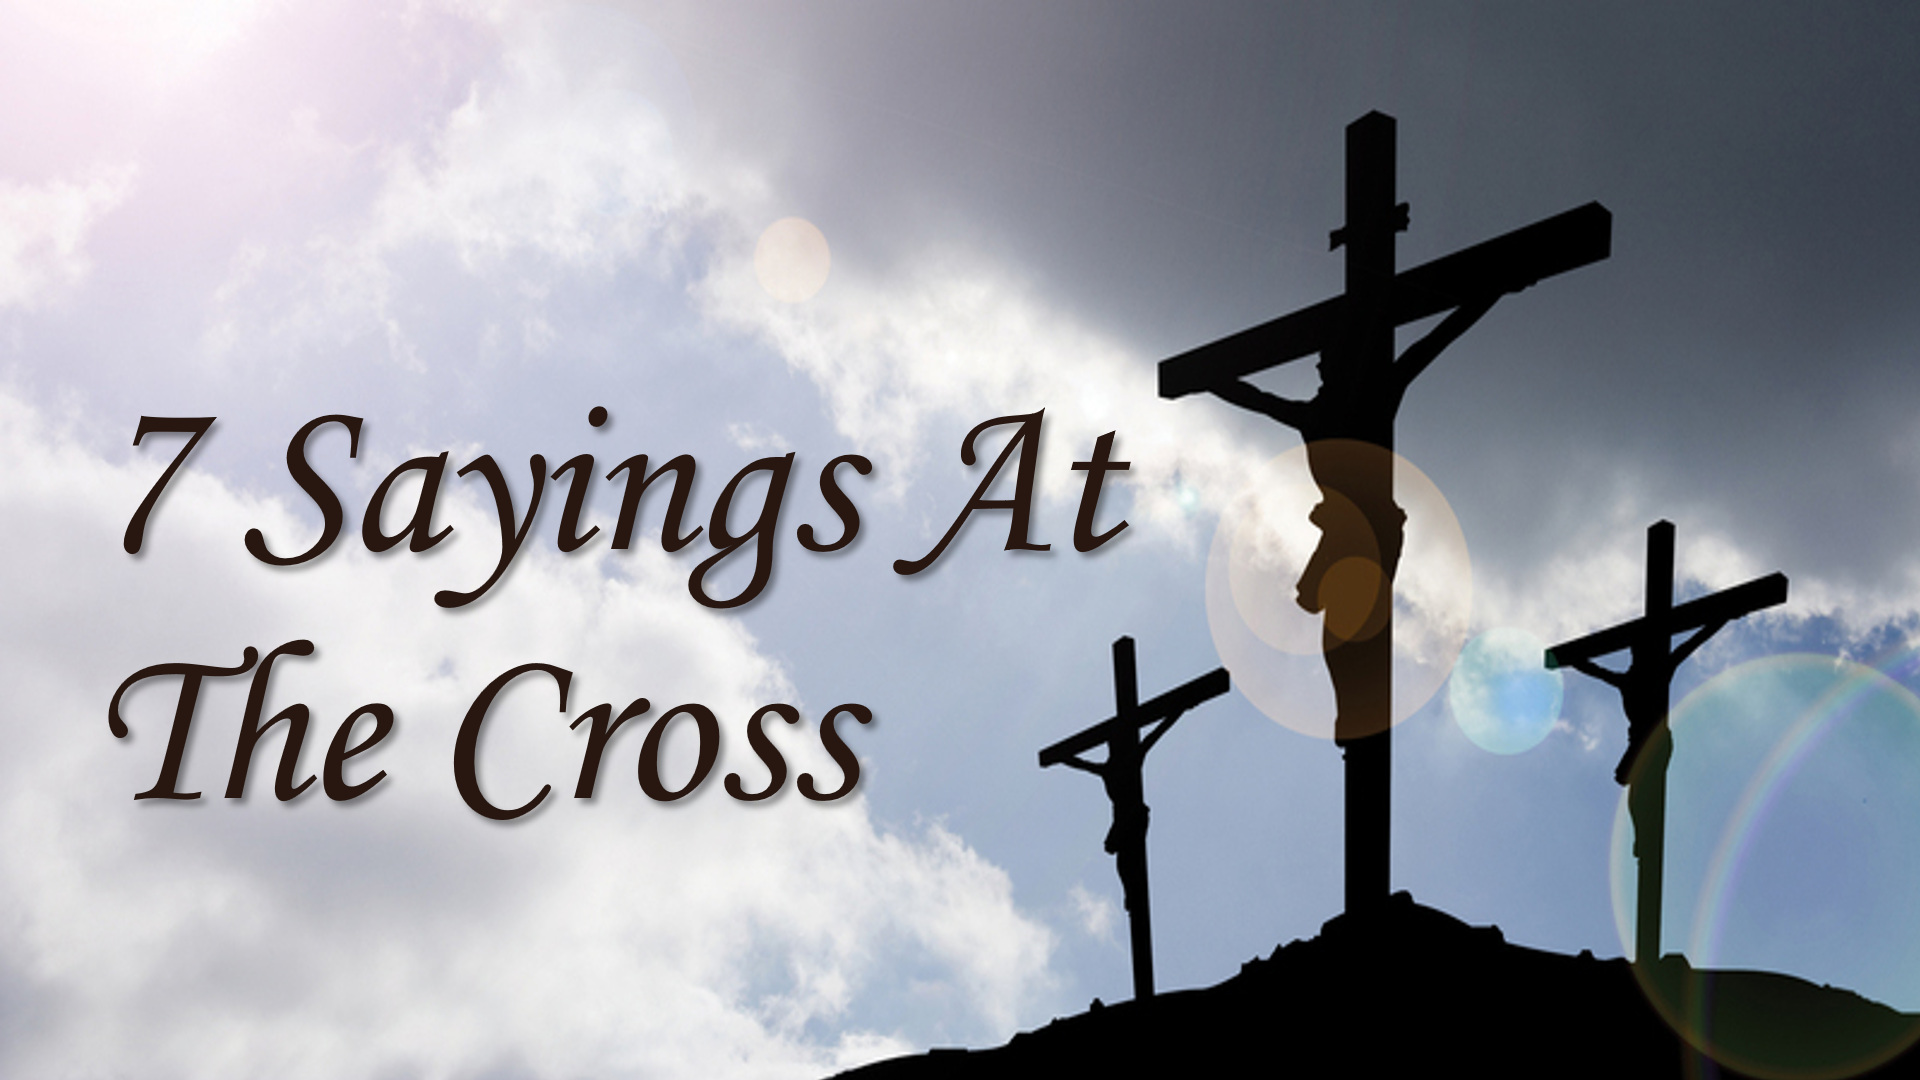 7 sayings at the cross sunset church of christ in springfield mo